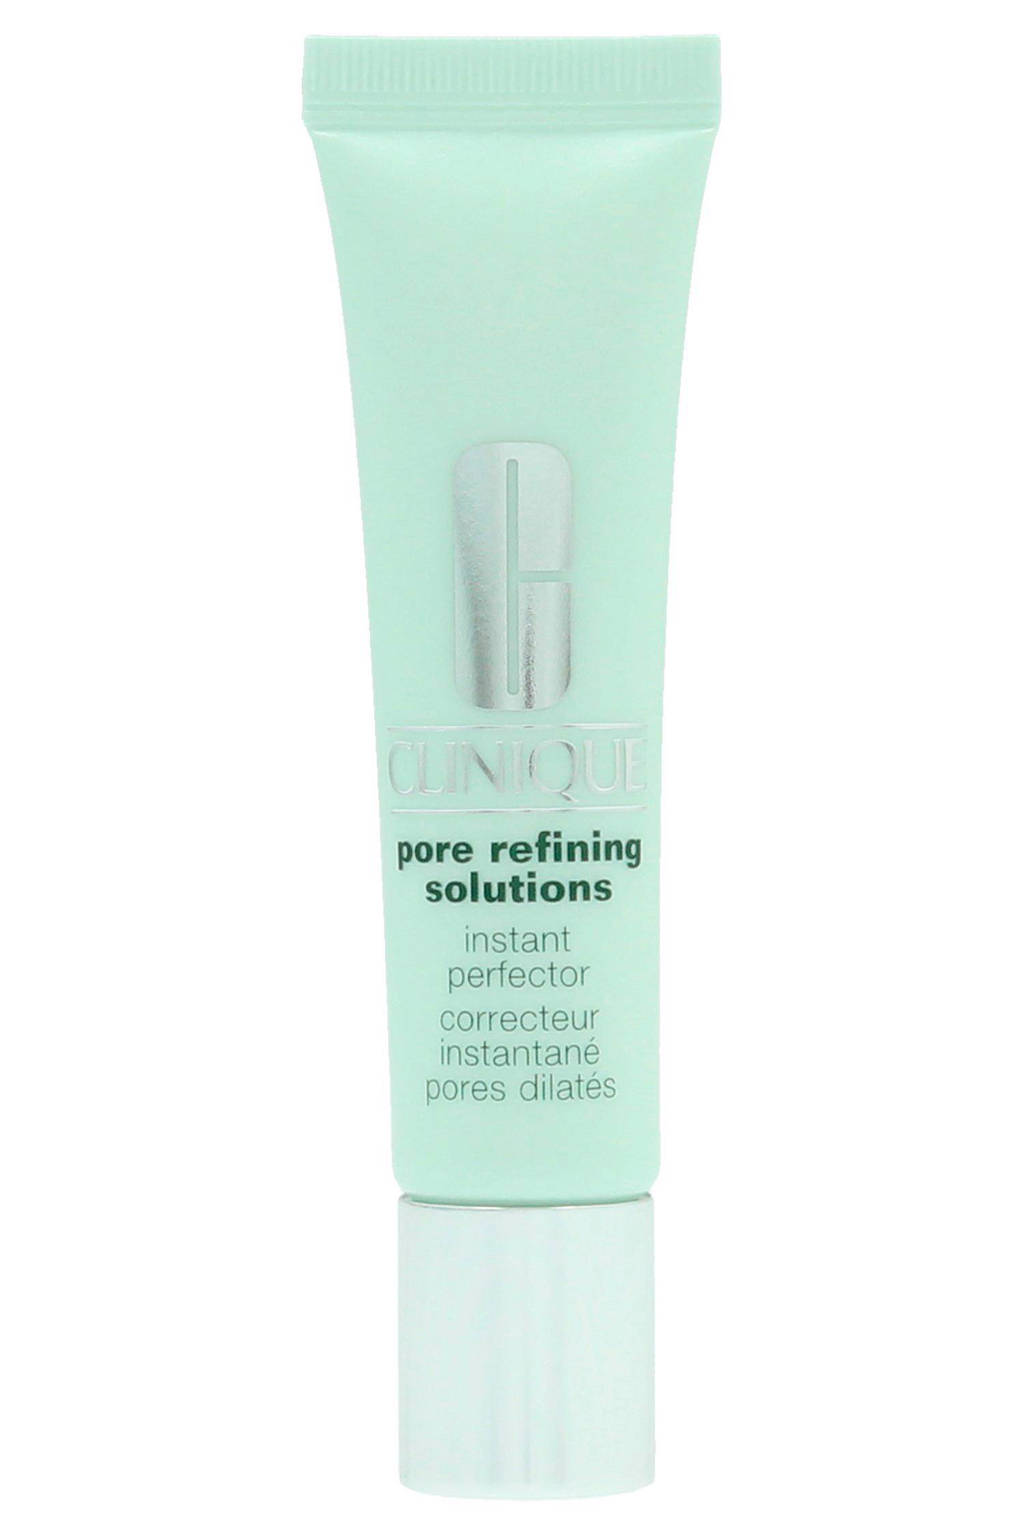 Clinique Pore Refining Solutions Instant Perfector - 01 Invisible Light